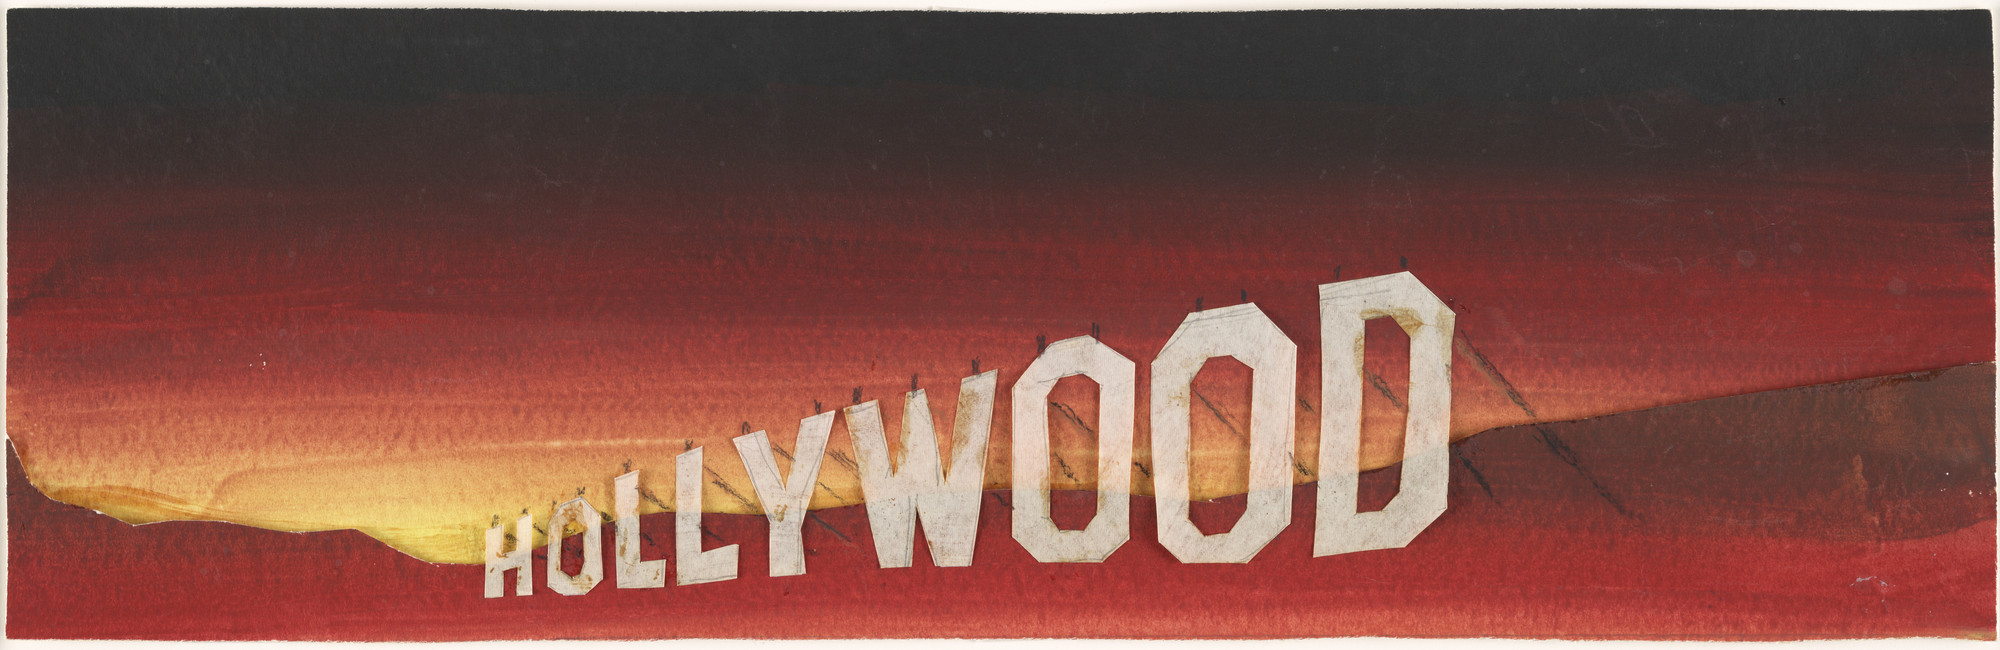 Edward Ruscha. Hollywood Study. 1968